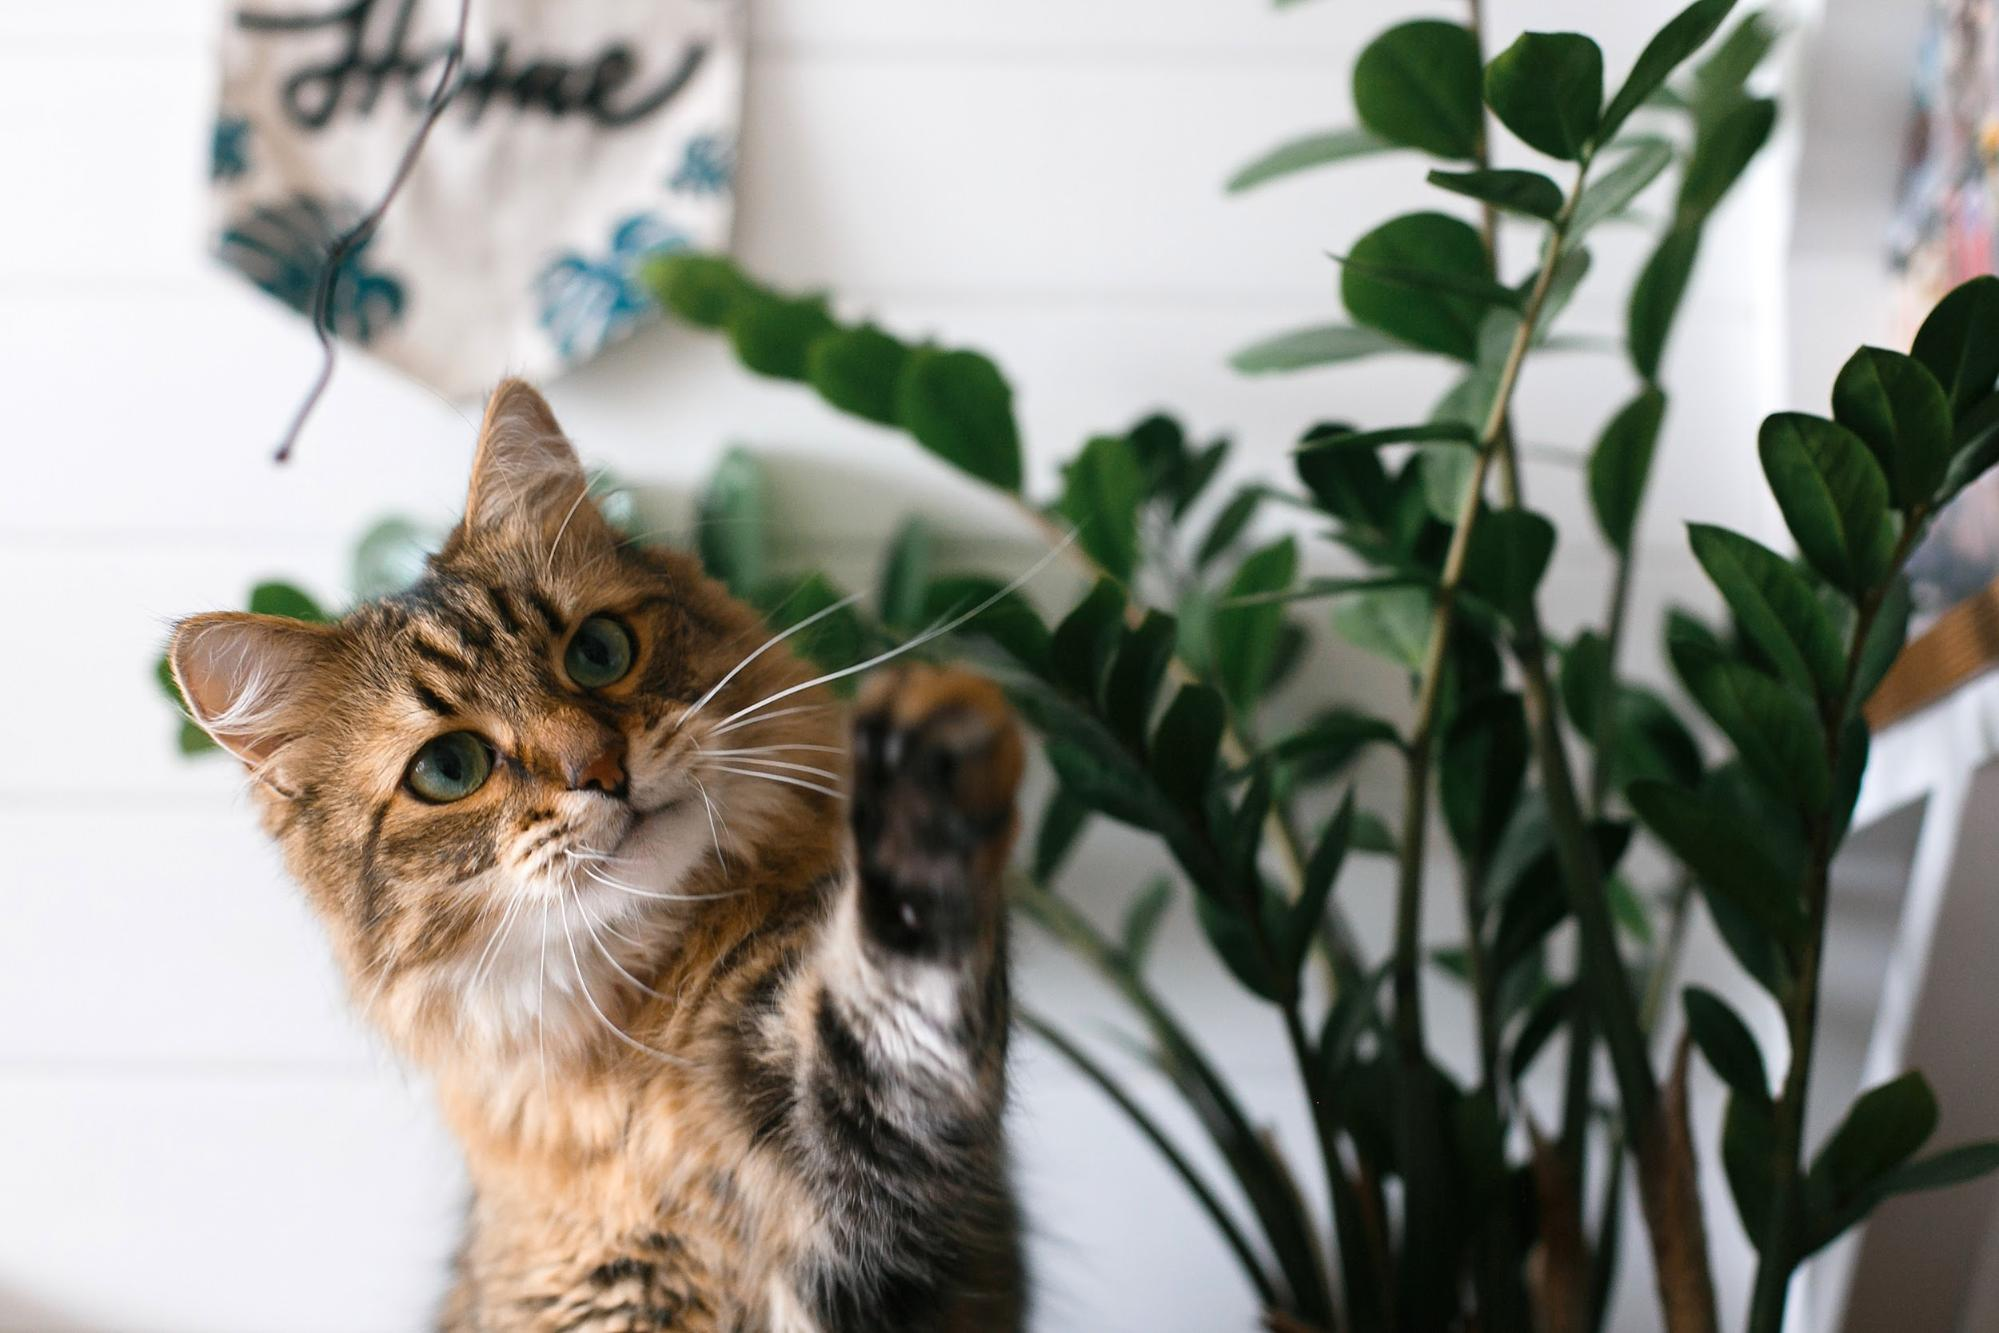 plants safe for cats: Cute cat playing with a plant